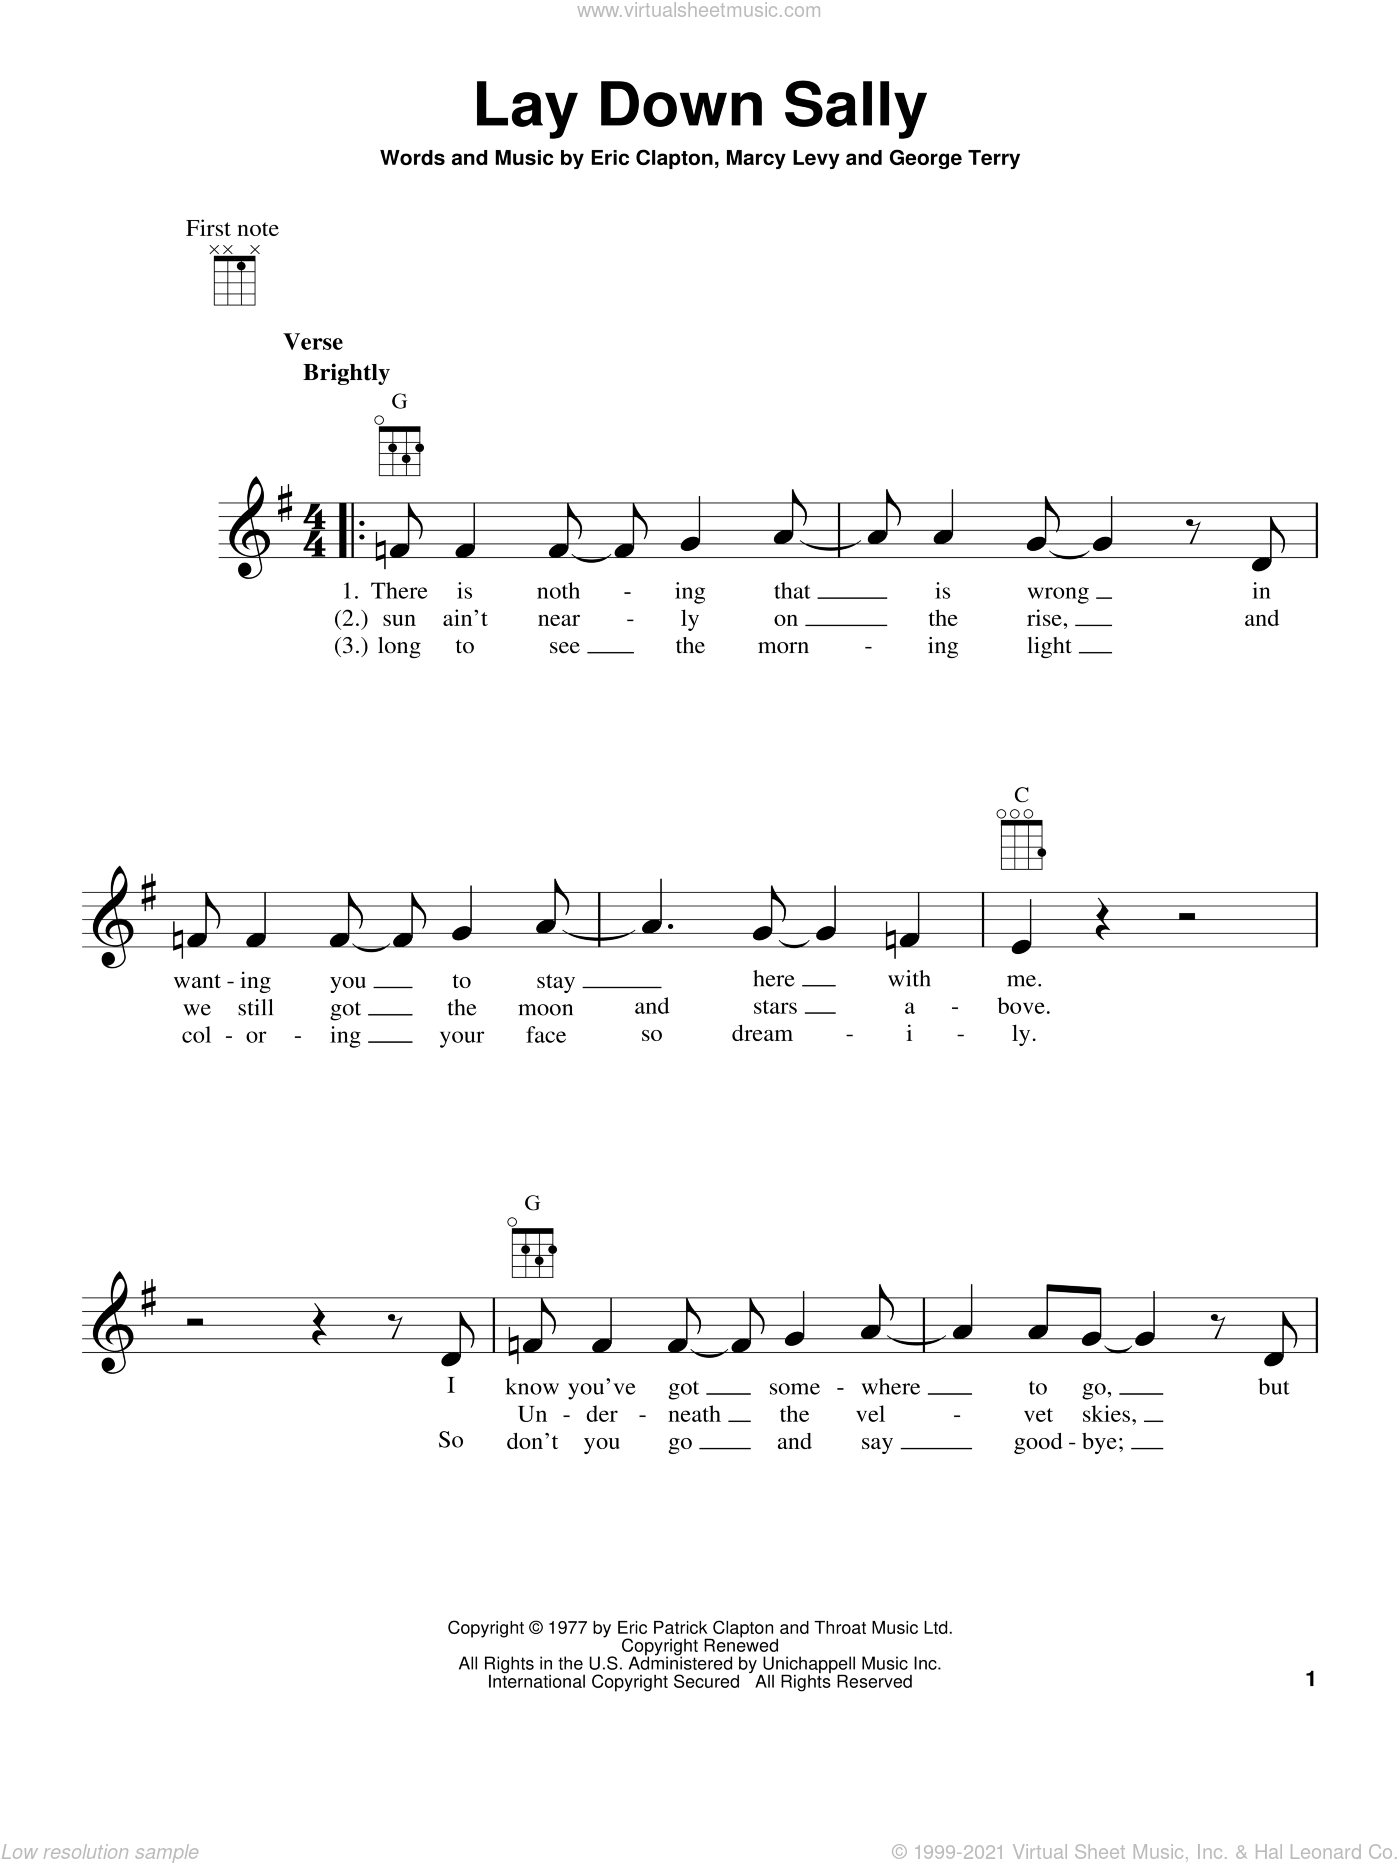 Lay Down Sally sheet music for ukulele by Eric Clapton, George Terry and Marcy Levy, intermediate skill level